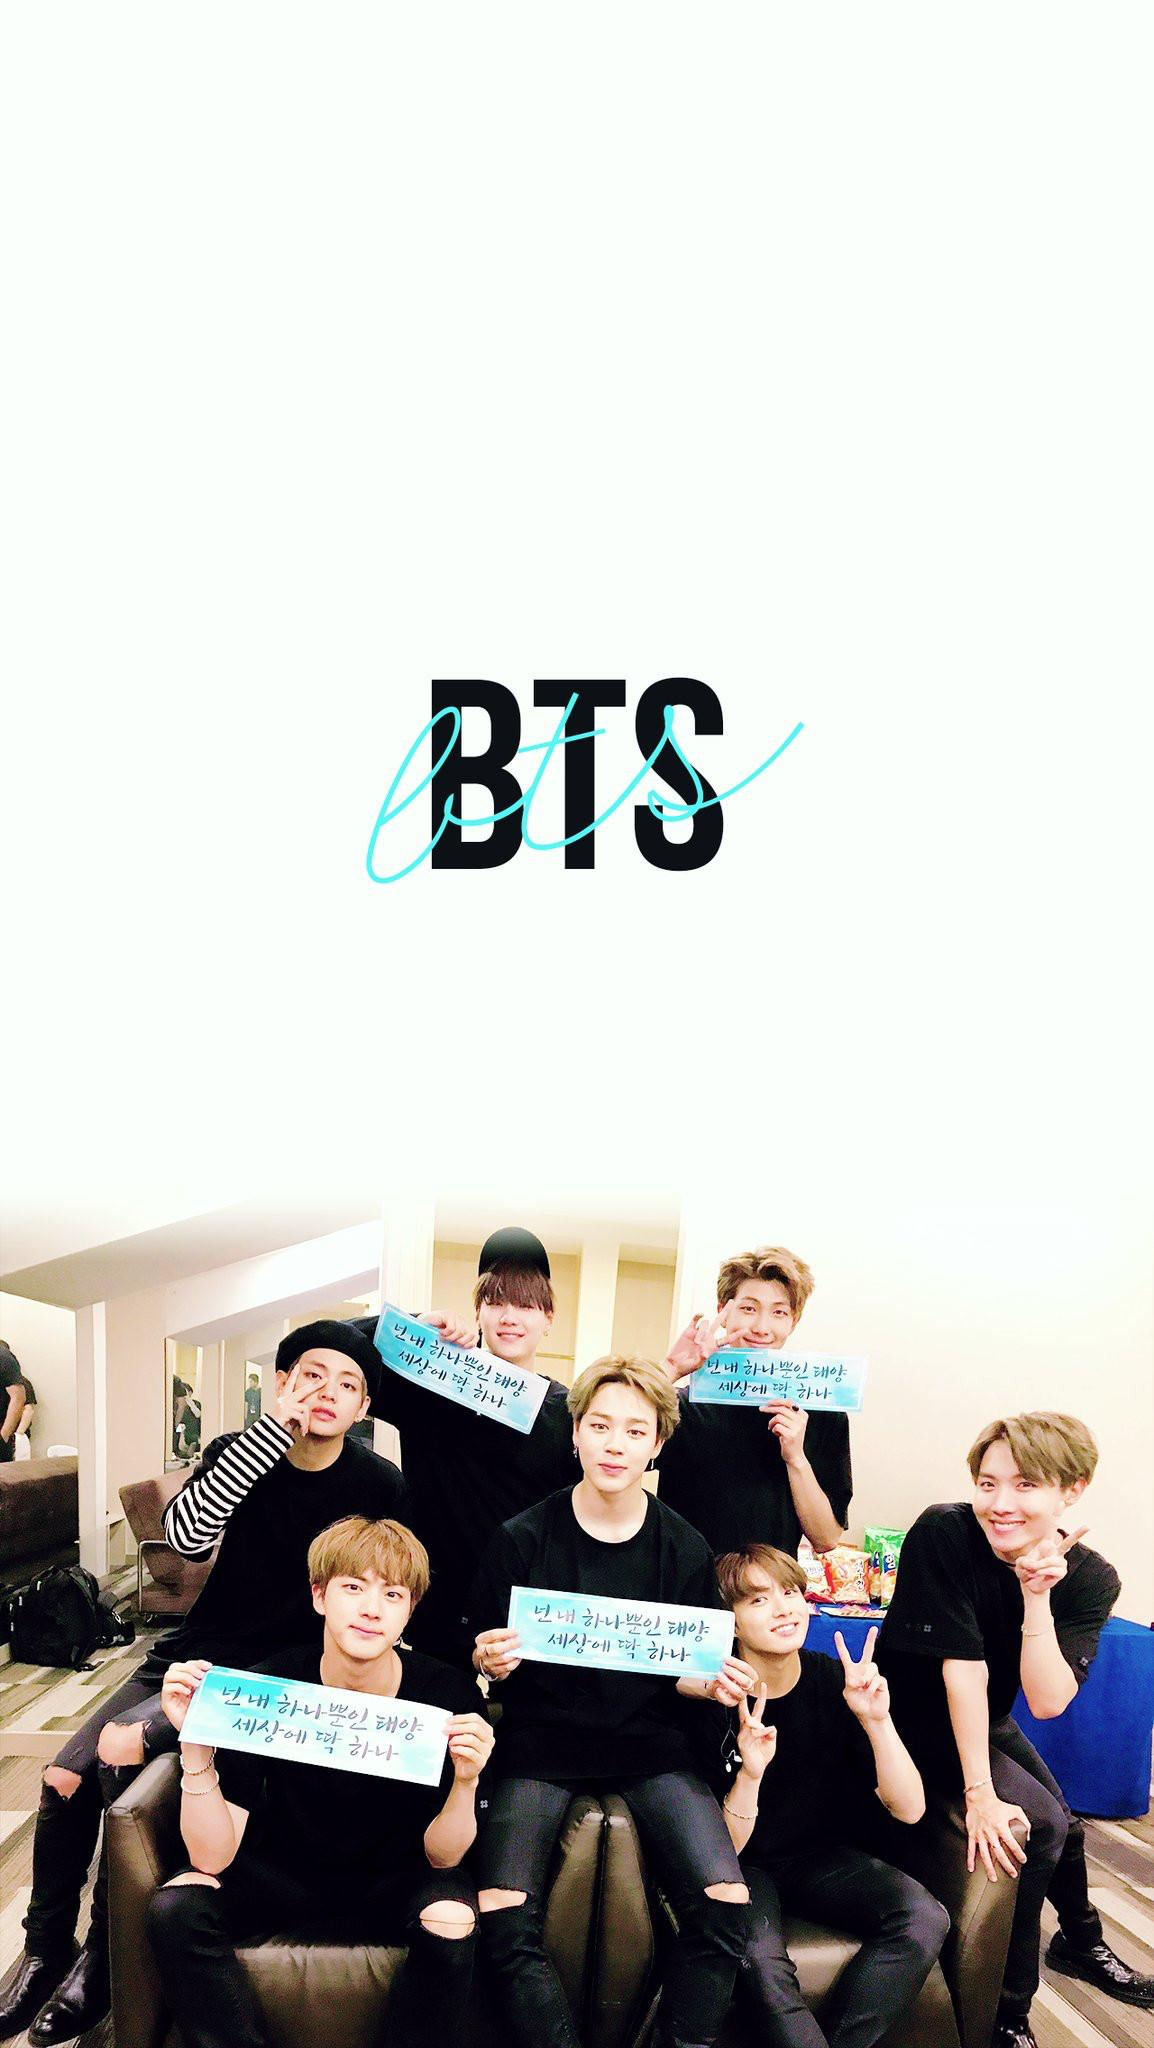 Bts Iphone Wallpapers Wallpaper Cave